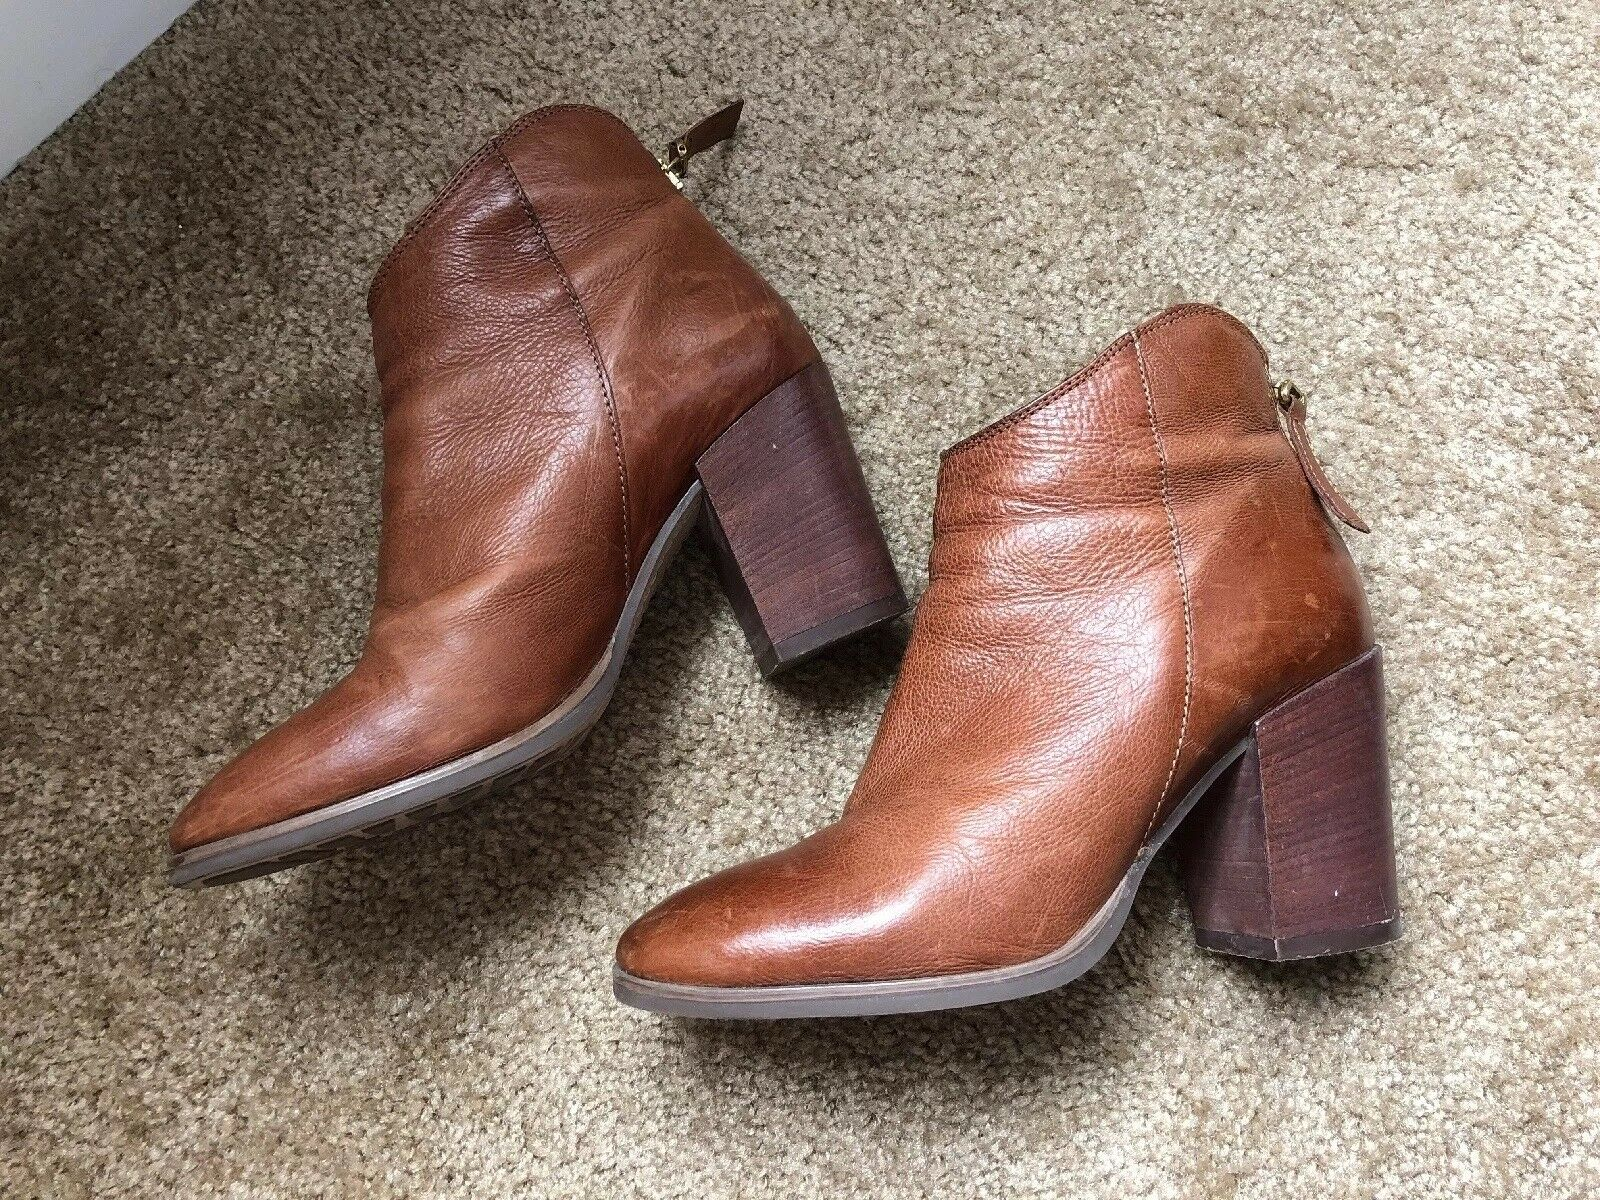 Clarks Women Boots 6.5. Leather upper, made in Romania.